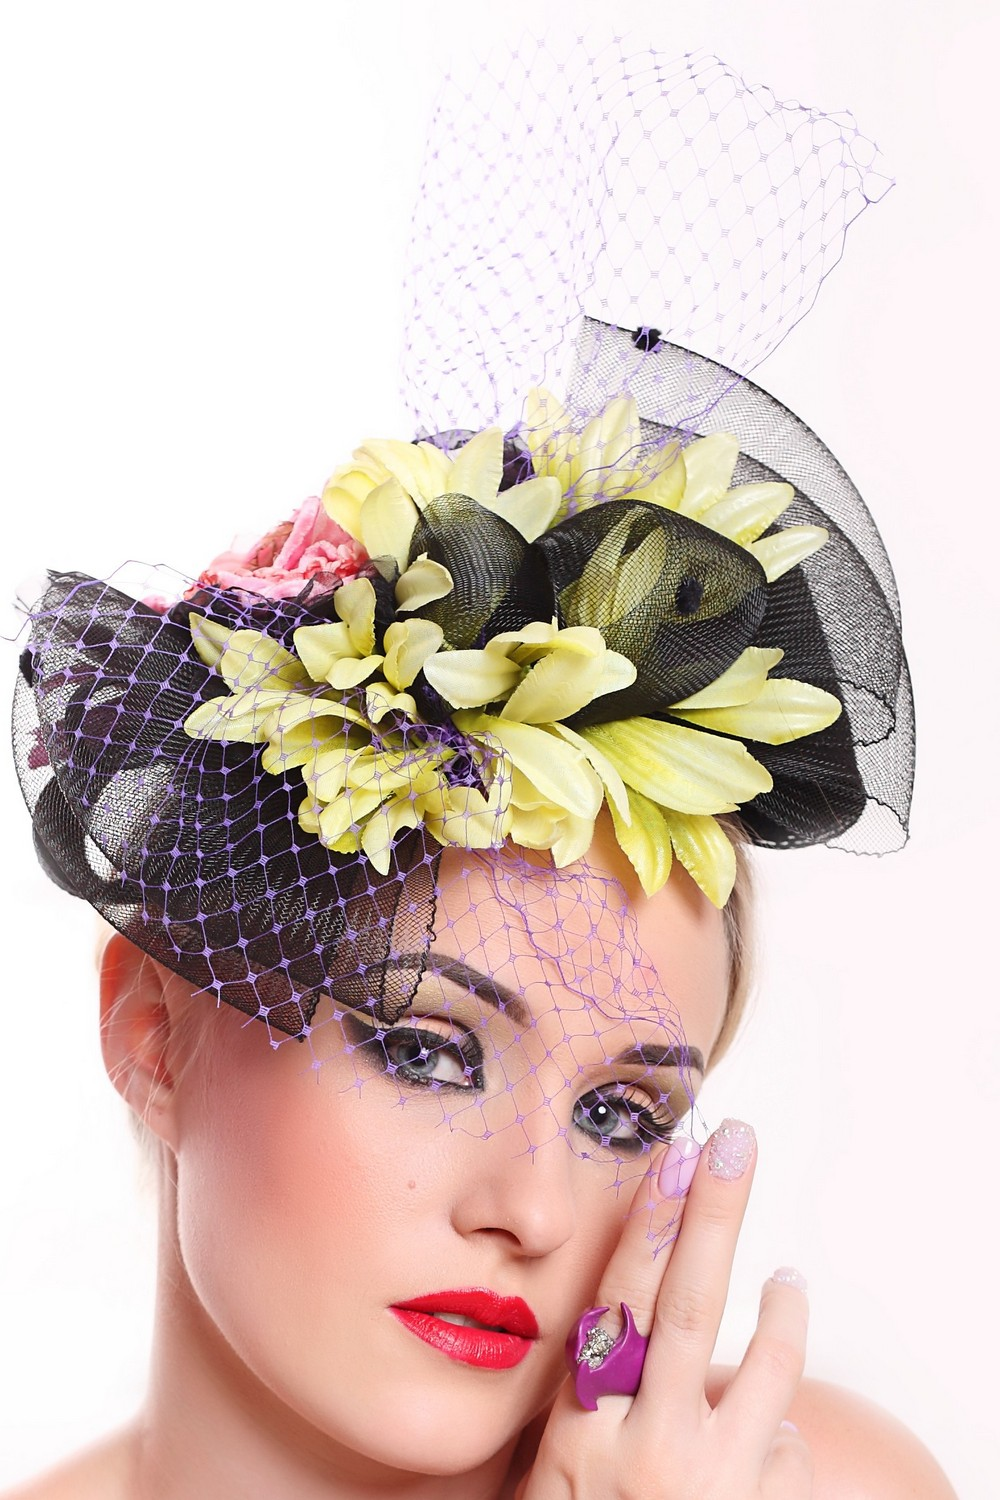 Buy Evening women's black bibi hat with flowers, Exclusive unique stylish hat for the holiday